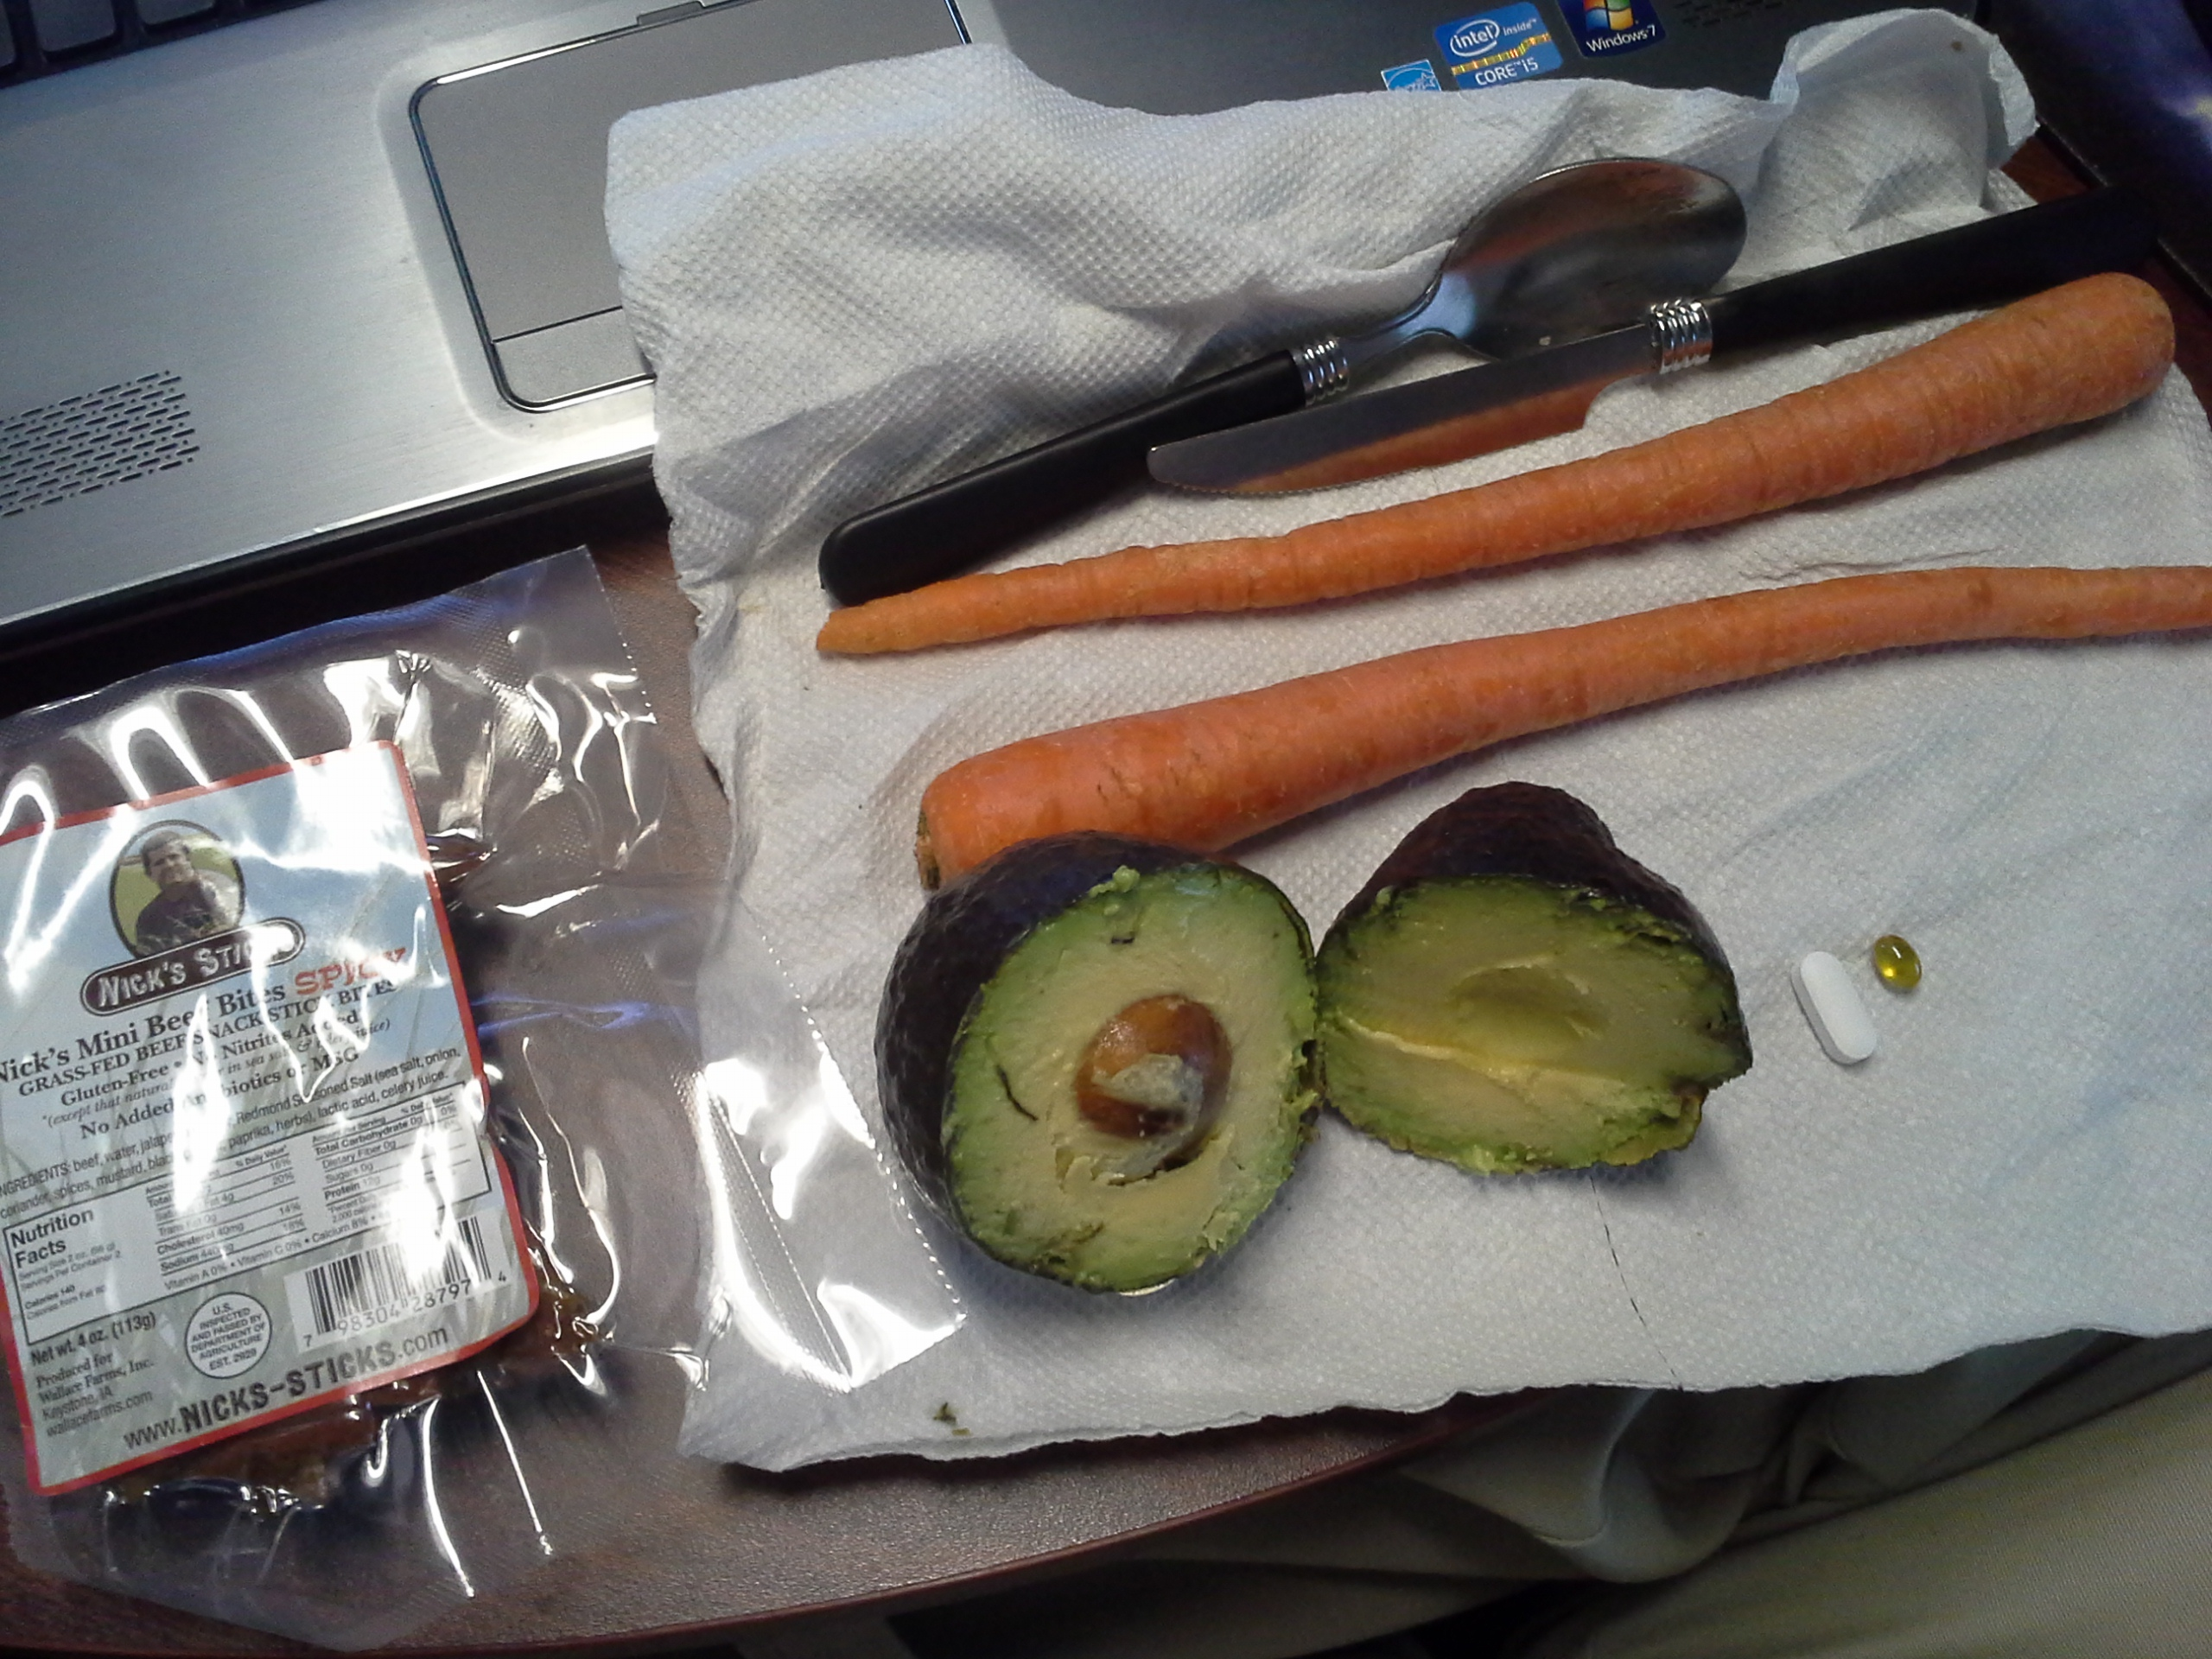 Lunch: 5:10 p.m. | 4 oz. beef sticks, 1 avocado, 2 carrots, 5,000 IU Vitamin D capsule, Calcium/Magnesium/Zinc caplet